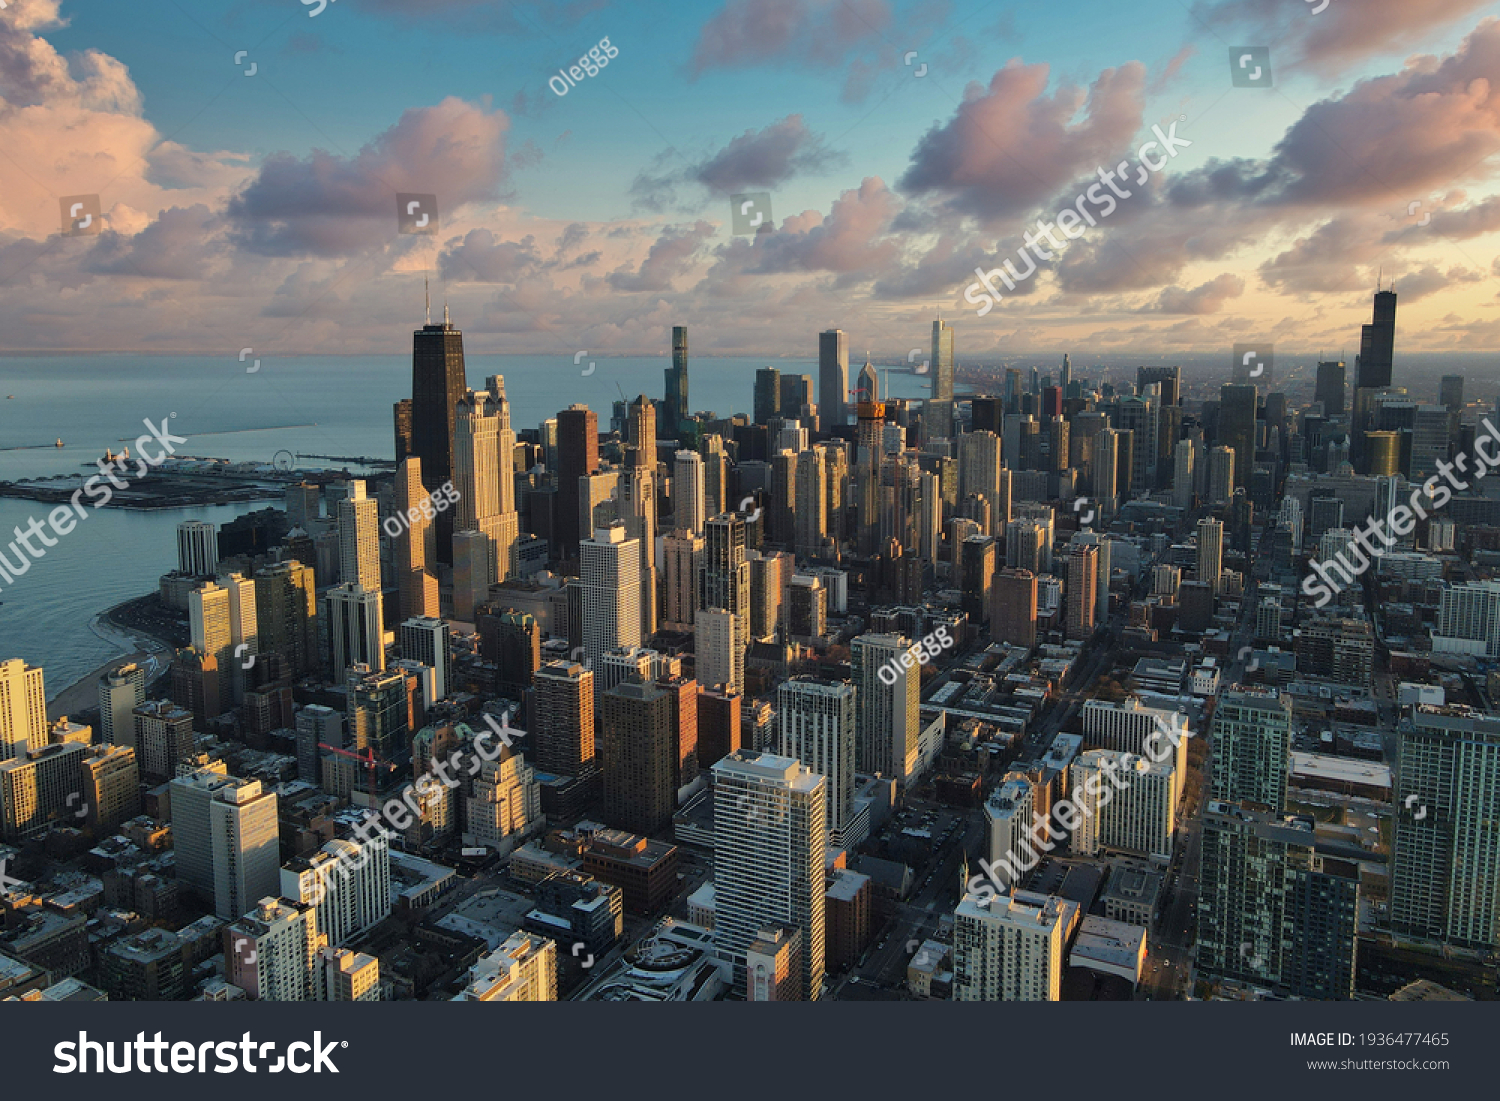 Chicago downtown aerial panorama view at sunset with skyscrapers and city skyline at Michigan lakefront with colorful cloud. #1936477465